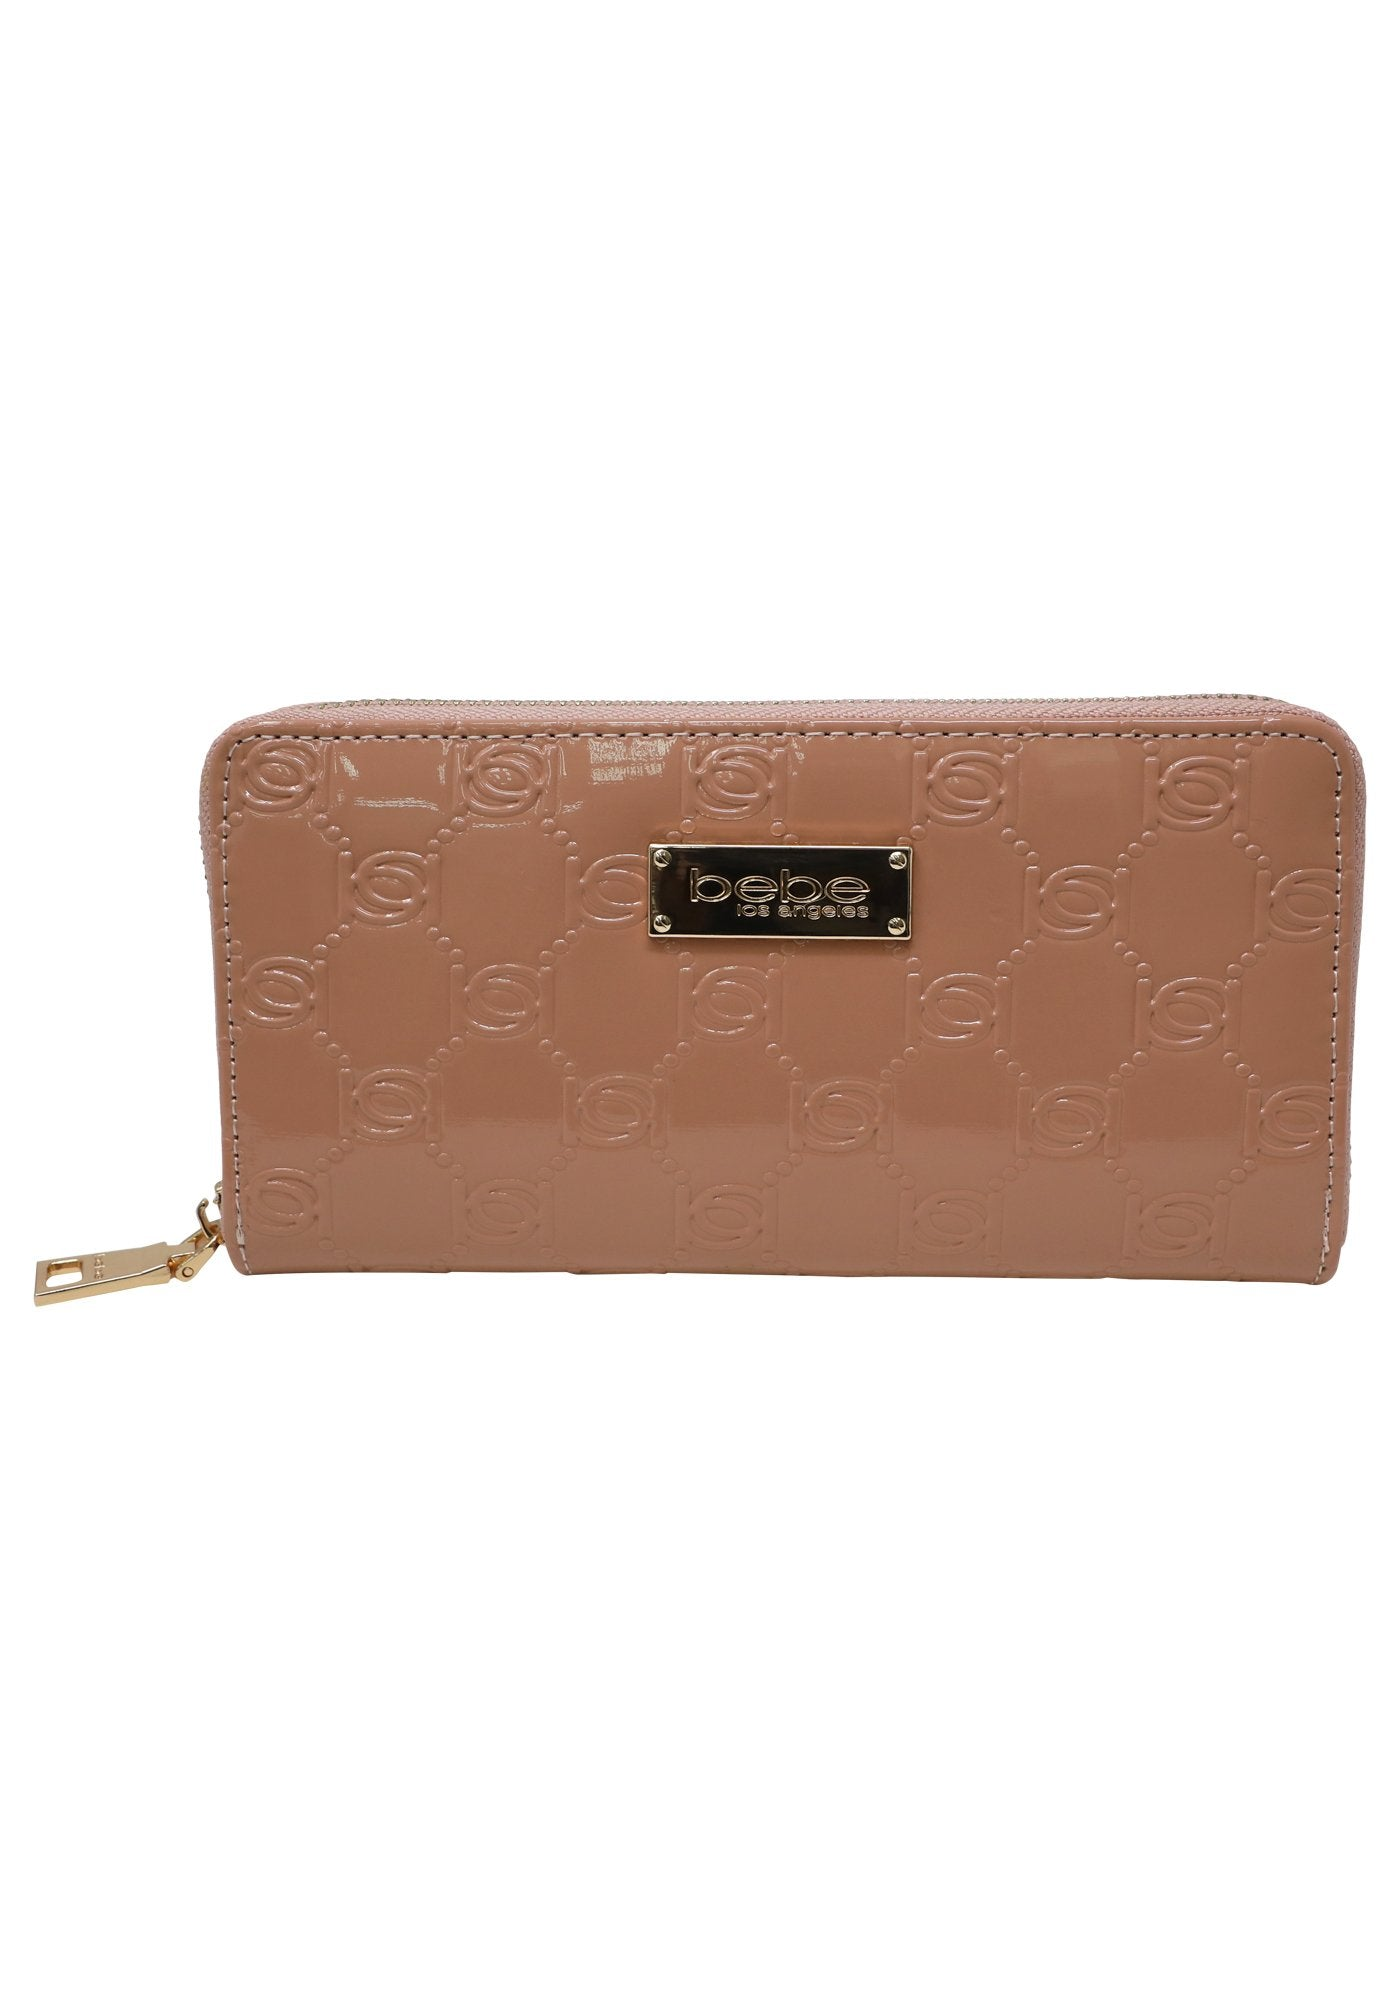 Bebe Women's Dana Patent Wallet, Size Mini in Blush